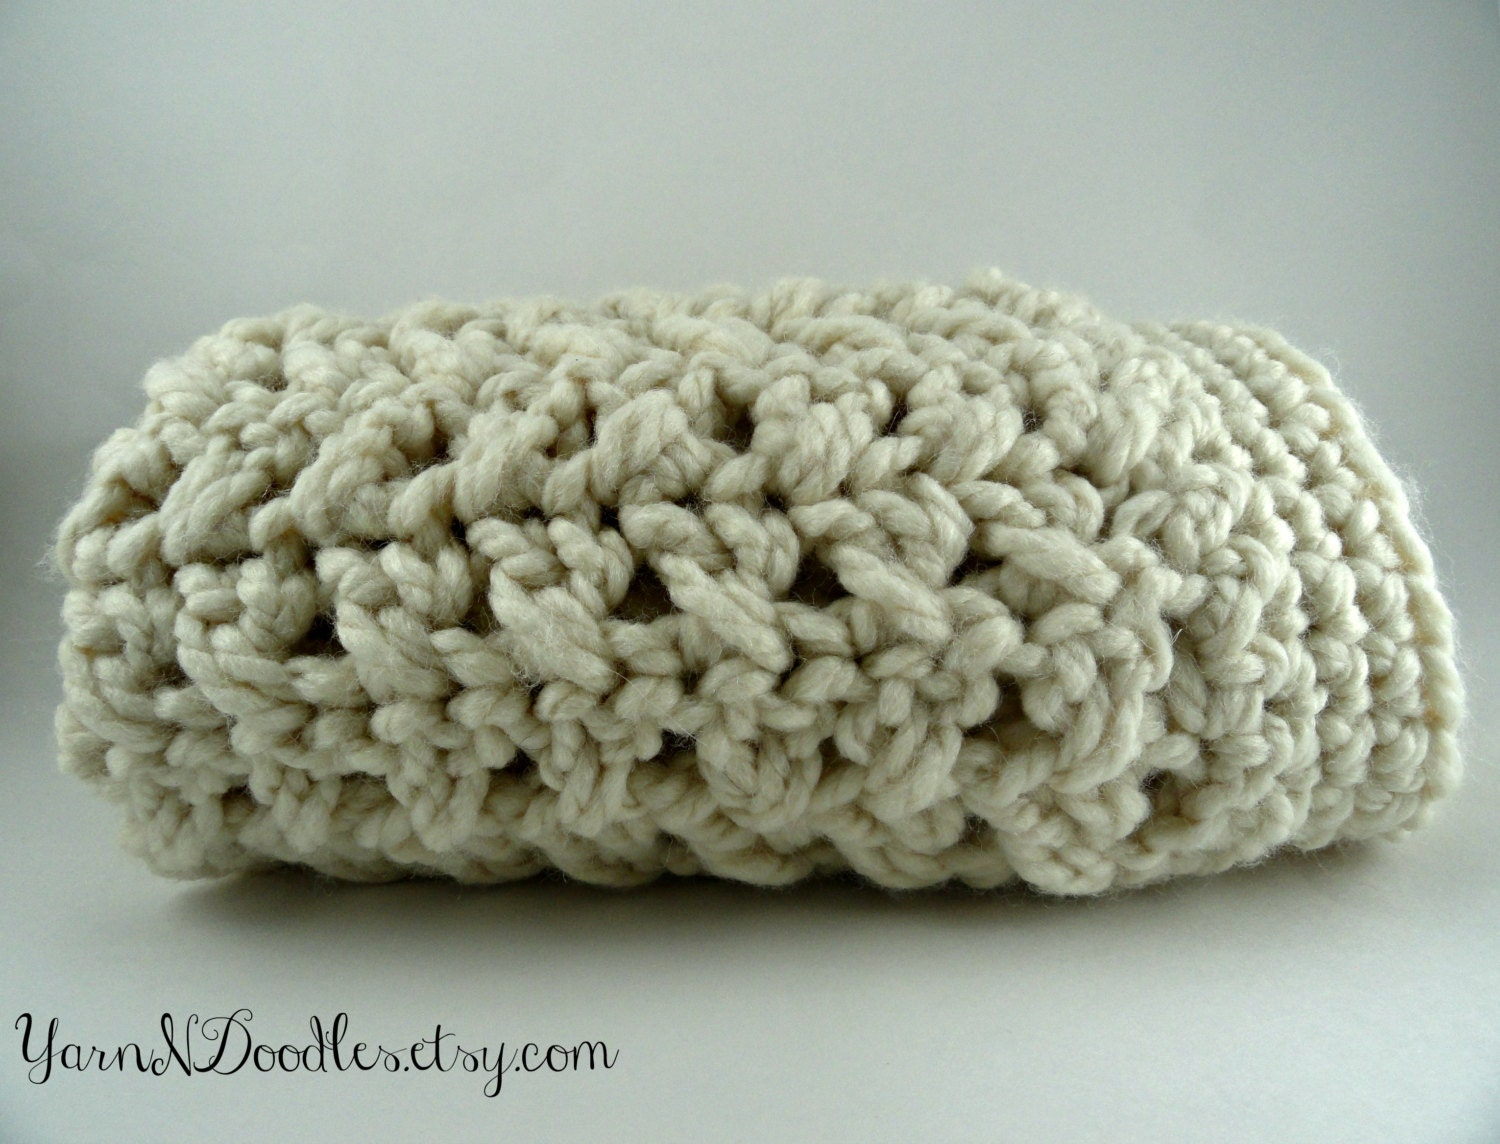 Free Crochet Afghan Pattern Bulky Yarn : Items similar to Super Bulky Textured Crochet Baby Afghan ...